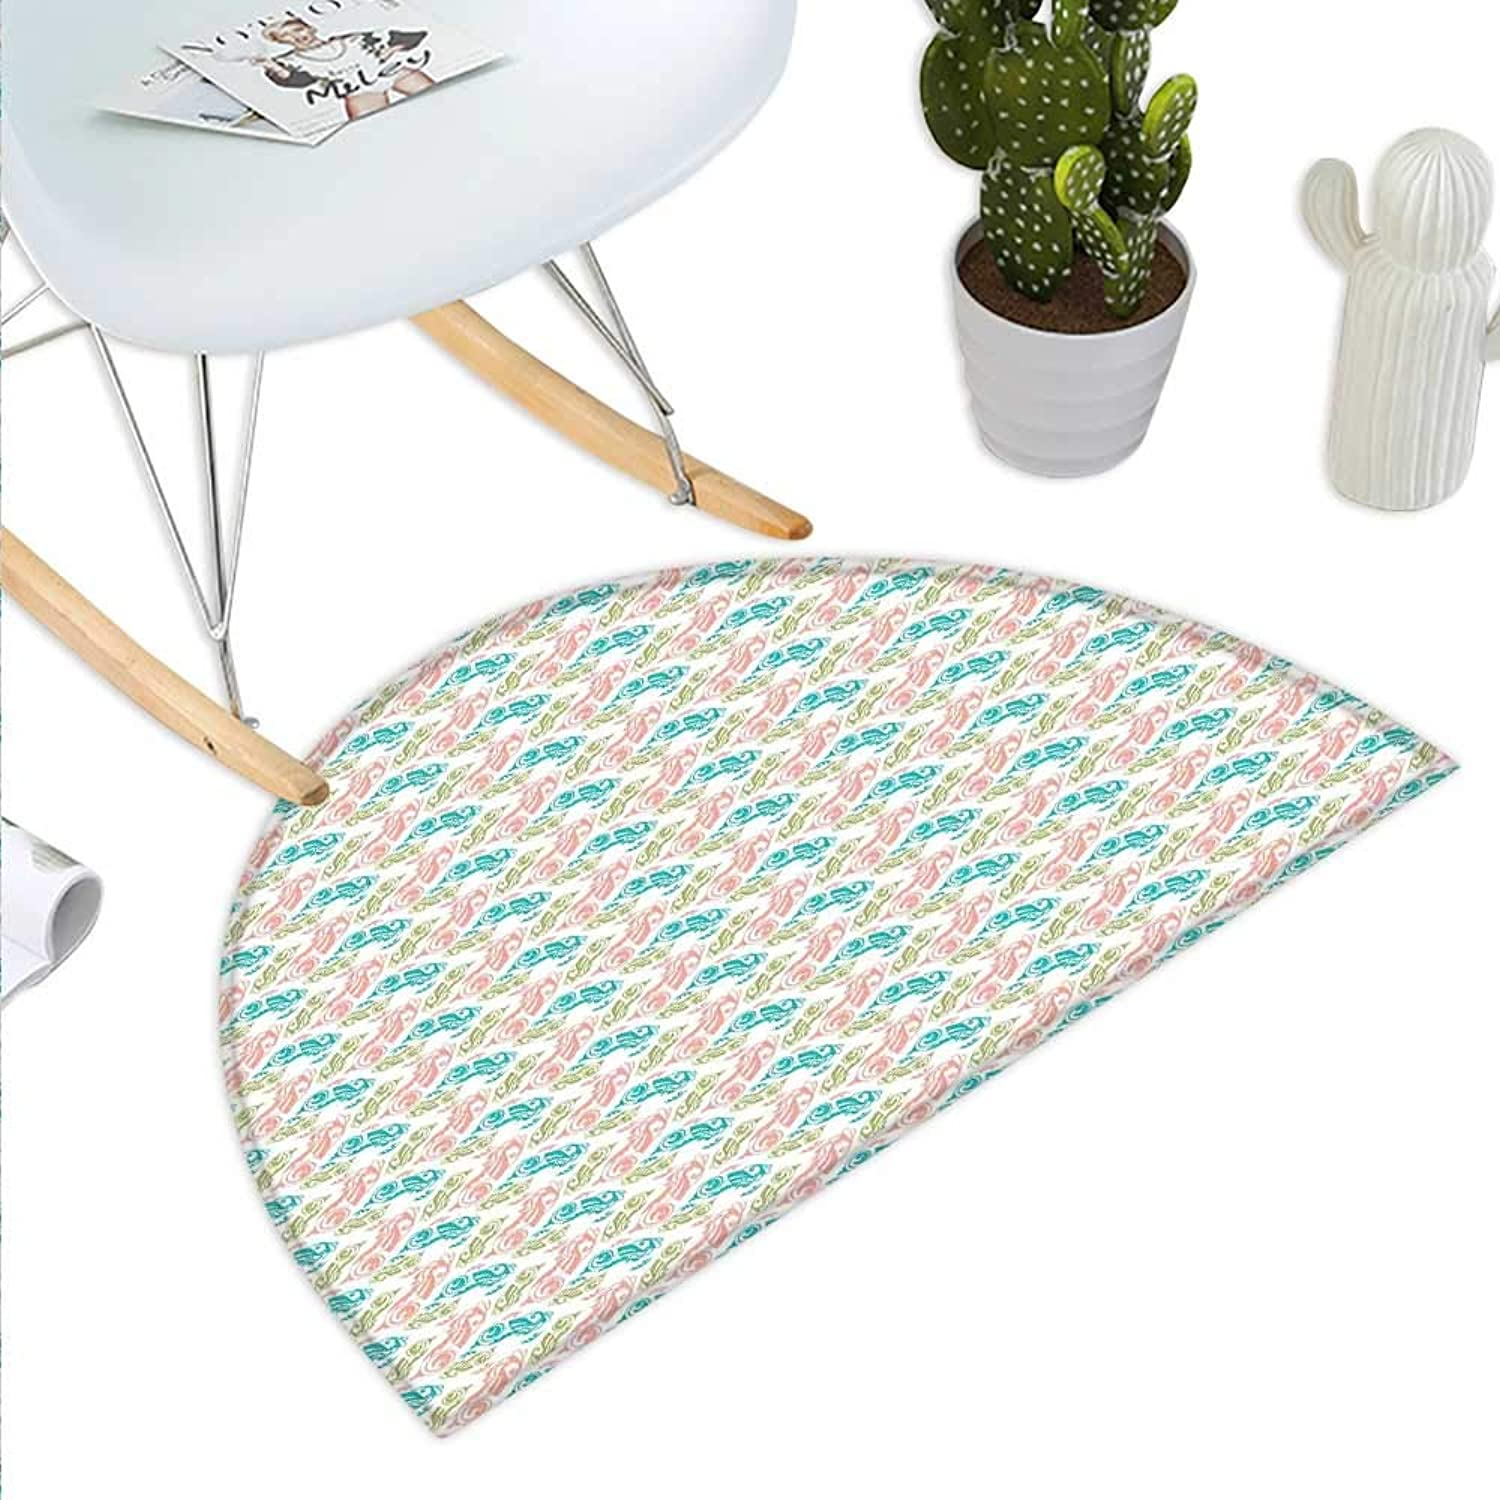 Oriental Semicircle Doormat Ornamental Fish Pattern with Rich Curls Fantasy Medieval Artwork Halfmoon doormats H 35.4  xD 53.1  Peach Green and Turquoise